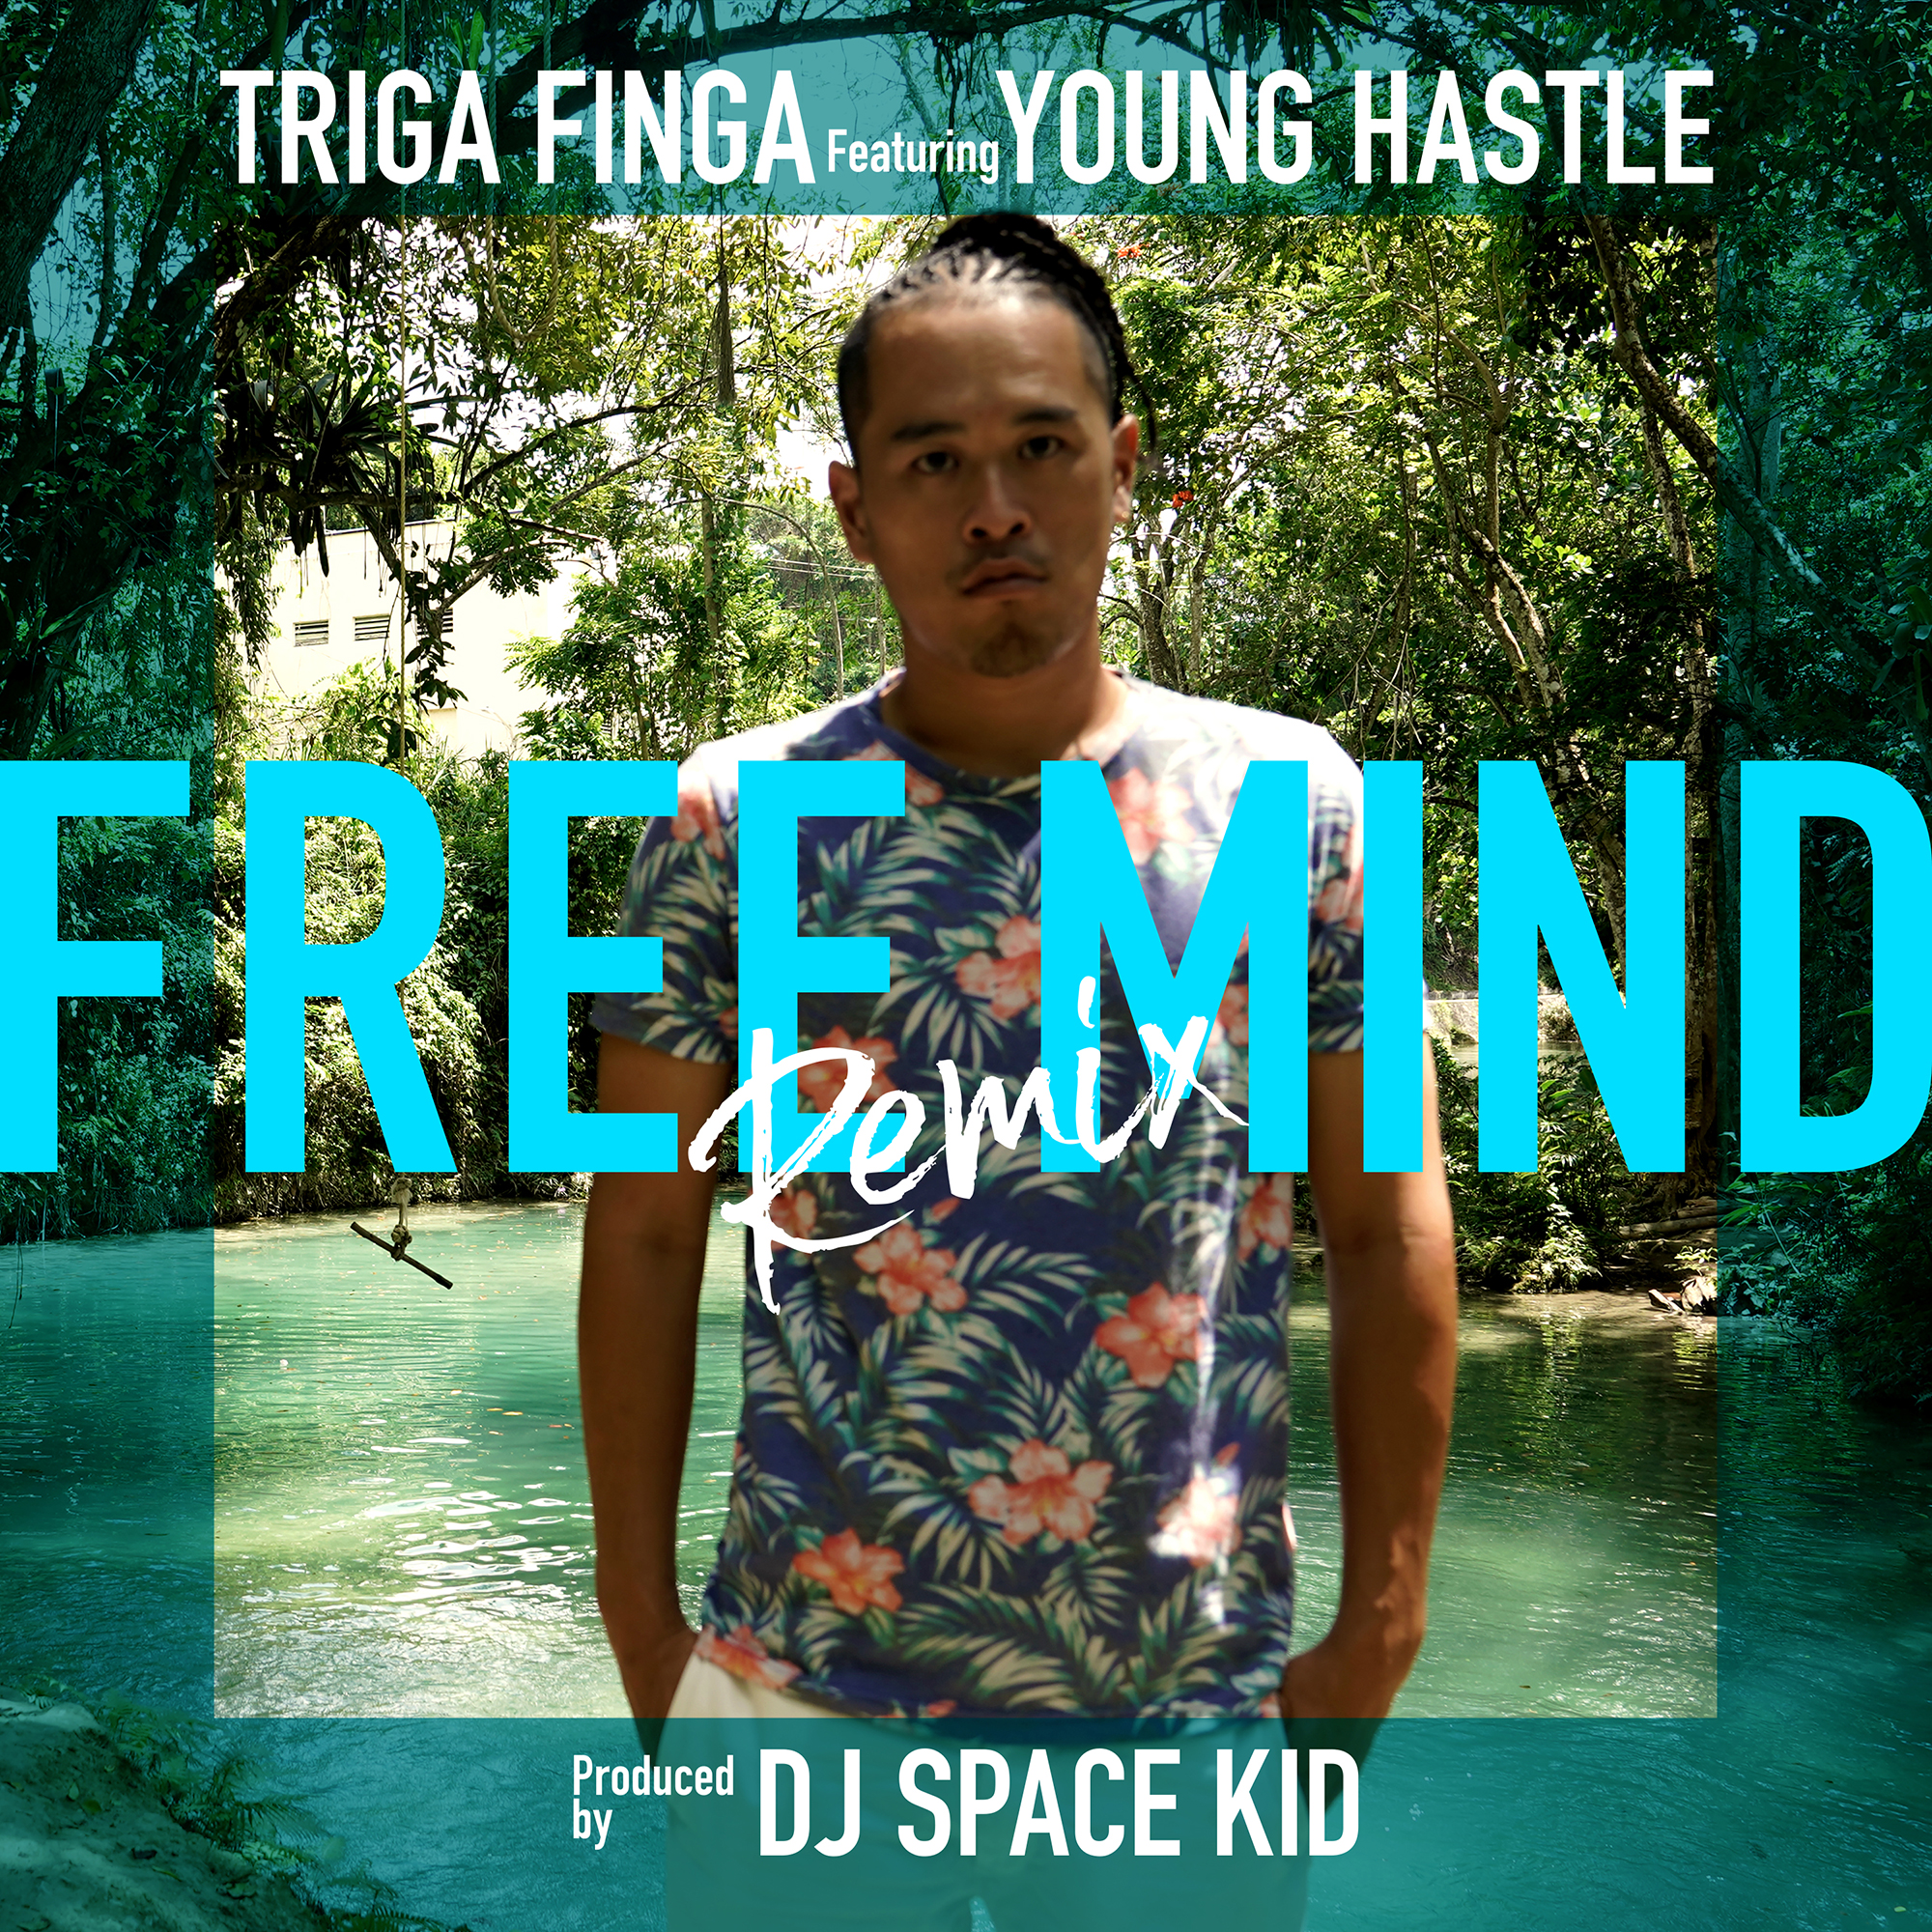 TRIGA FINGA 「FREE MIND (Remix) [feat. YOUNG HASTLE]」 配信中